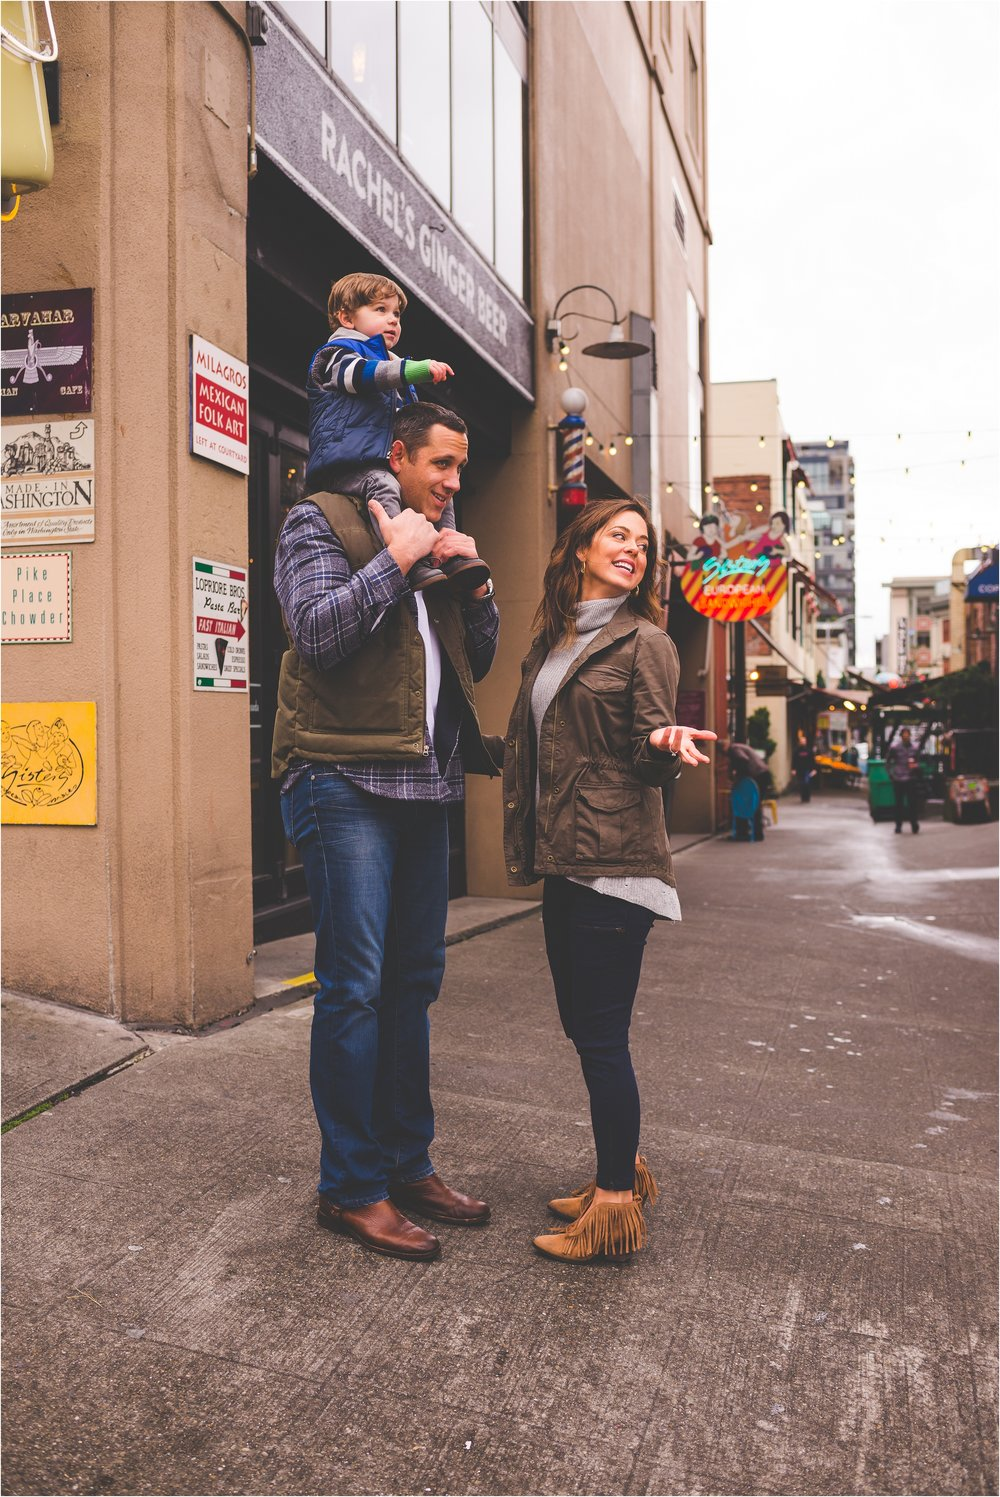 downtown-seattle-pike-place-market-family-session-jannicka-mayte-seattle-wa-family-photographer_0014.jpg